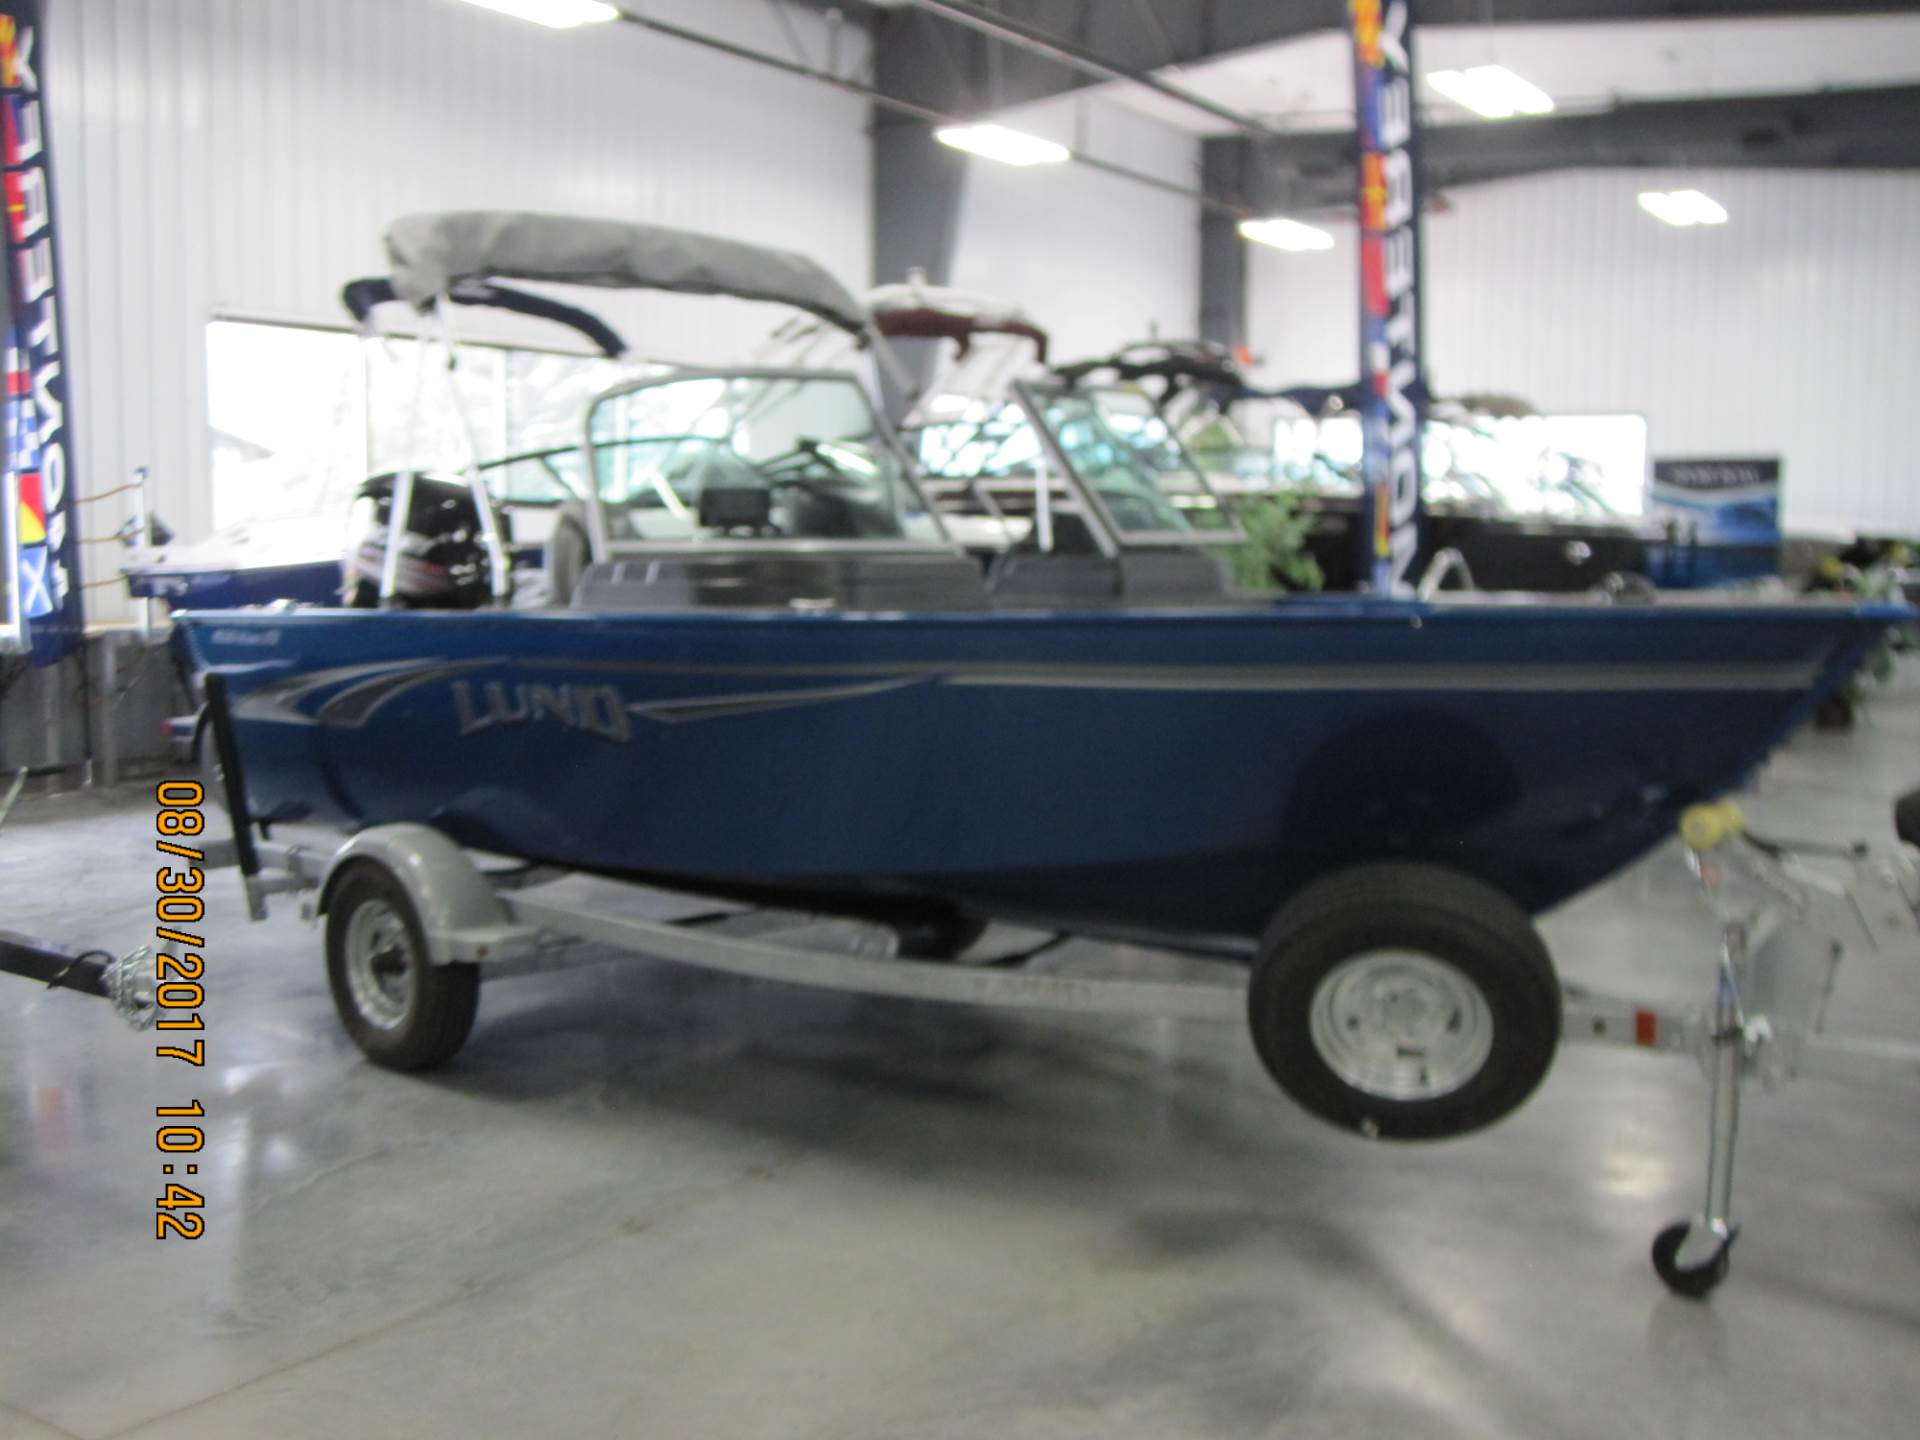 Lund 1650 Rebel XS Sport 2018 Aluminum Lund Fishing Boat for Sale